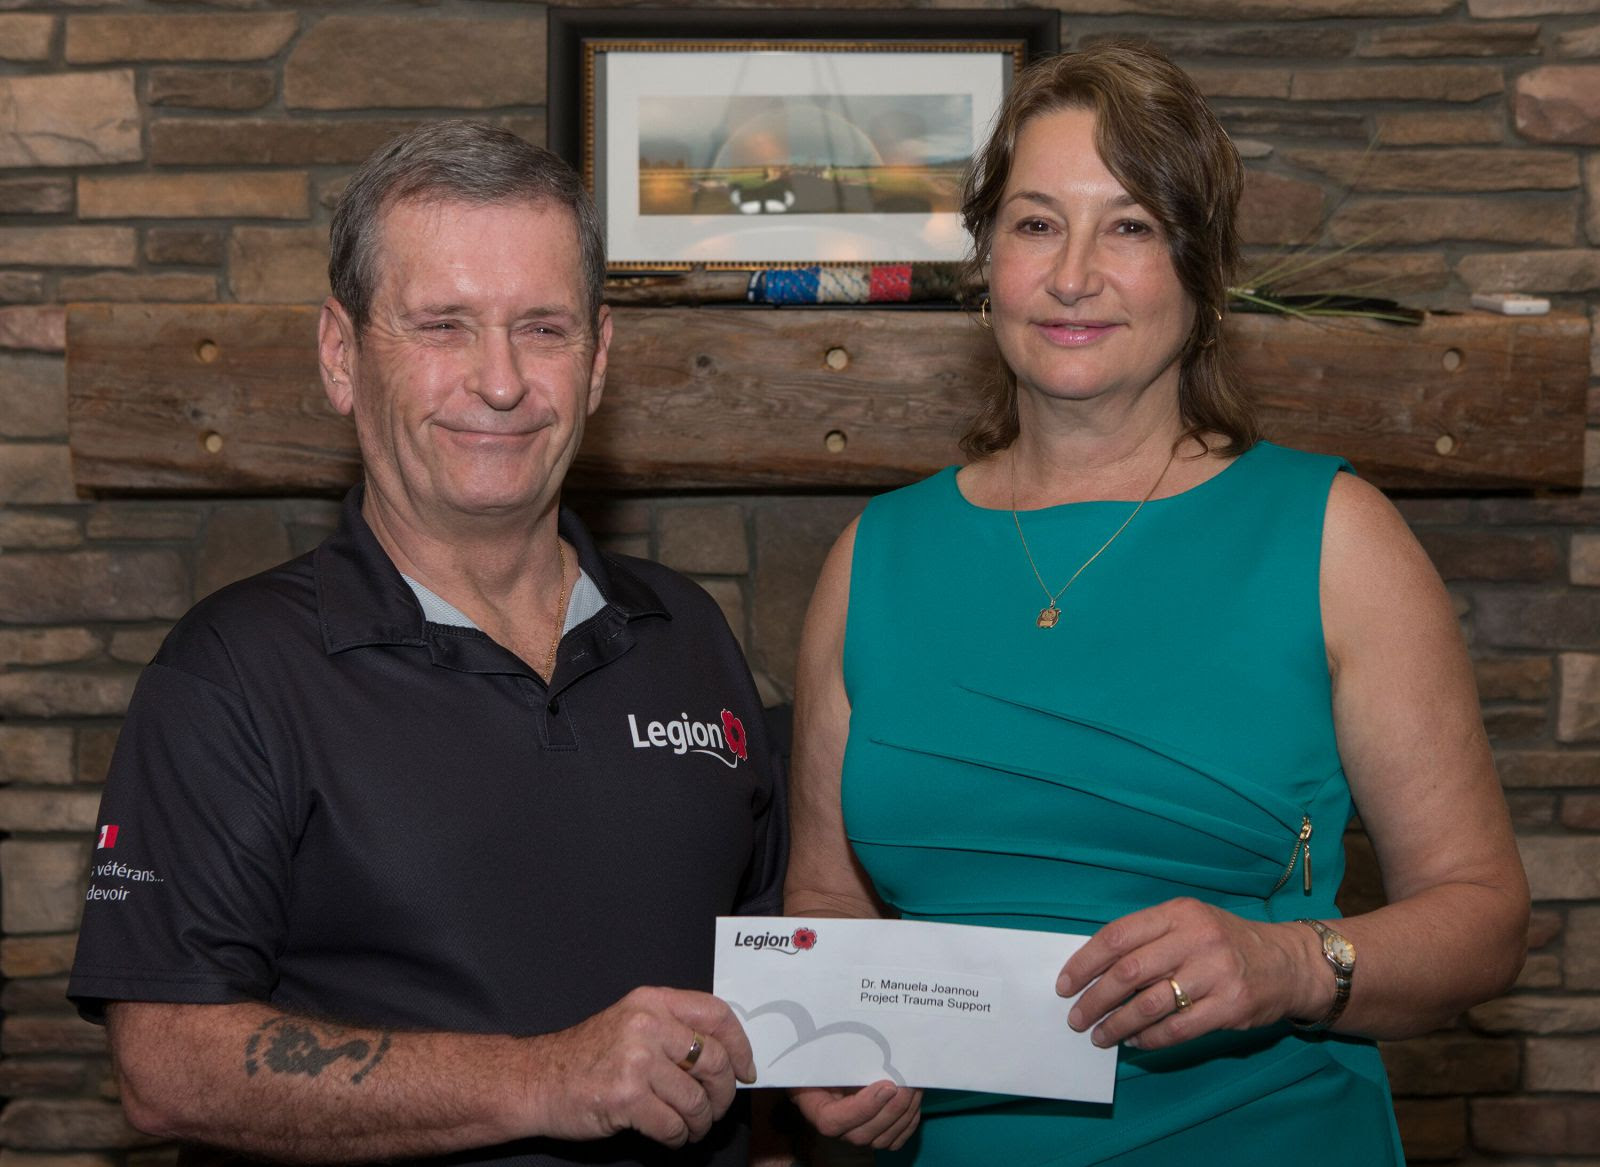 Legion donates $300k to promising PTSD treatment program